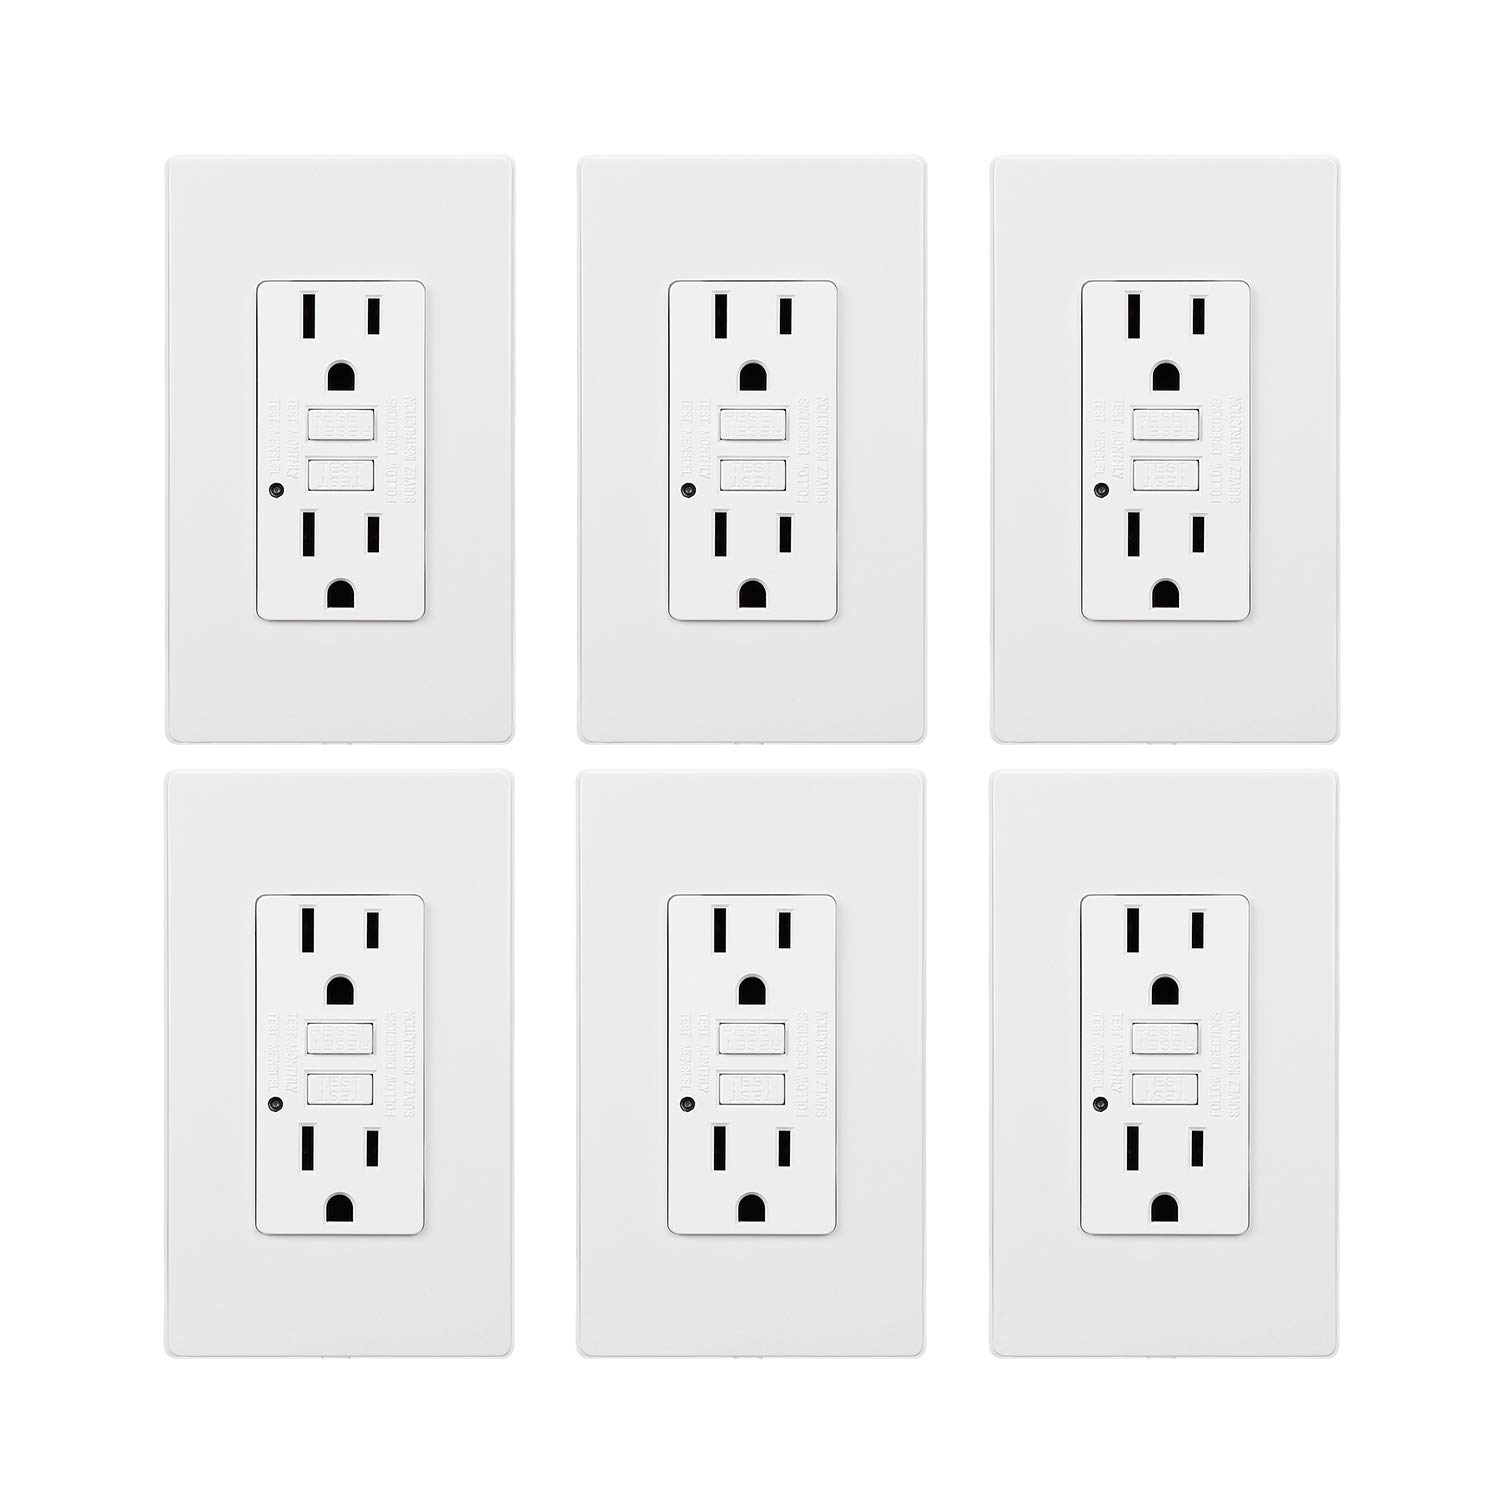 TORCHSTAR 15 Amp GFCI Receptacles, Dual AC Outlets, Surge-Protected, 2 Wall Plate Included + LED Indicator Light, ETL-listed, 120V, White, Pack of 6